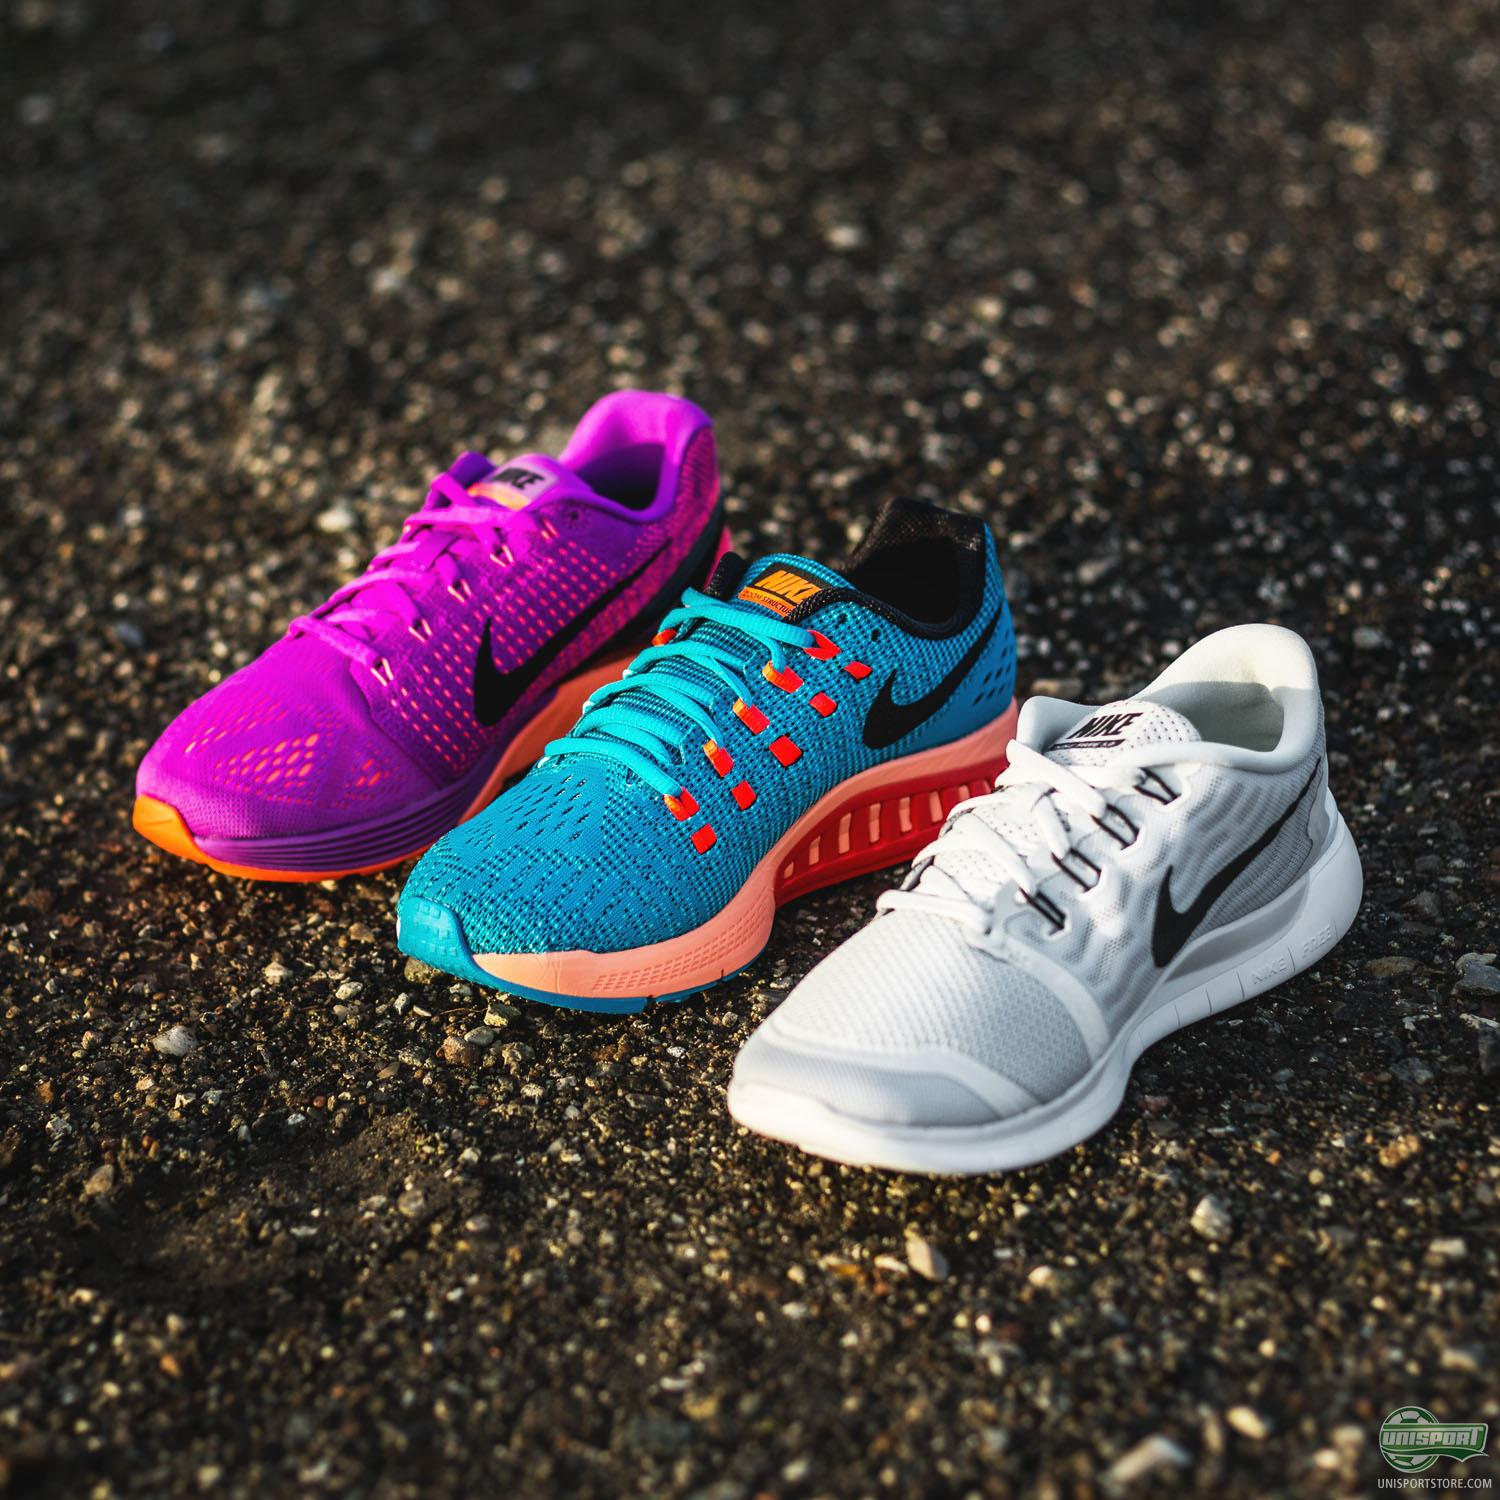 giày chạy bộ Nike LunarGlide & Structure